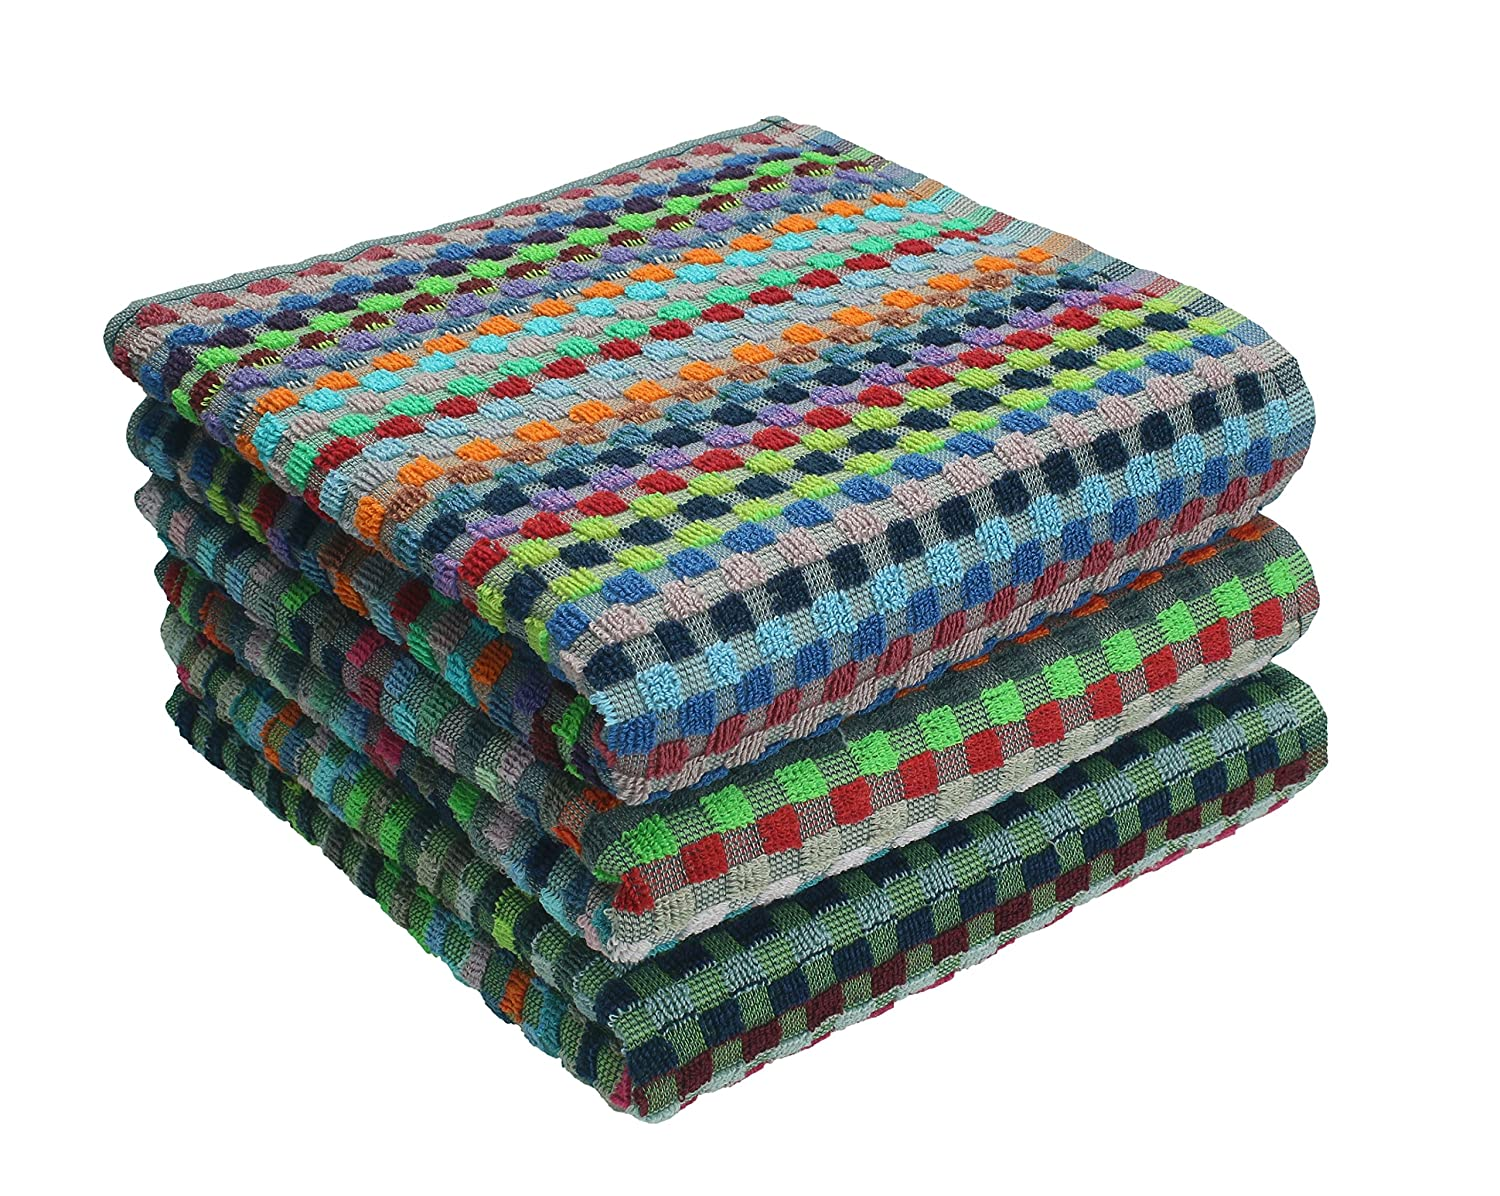 Betz 3 Piece Set Work Towel size: 50 x 90 cm, 100% cotton, colourfully chequered